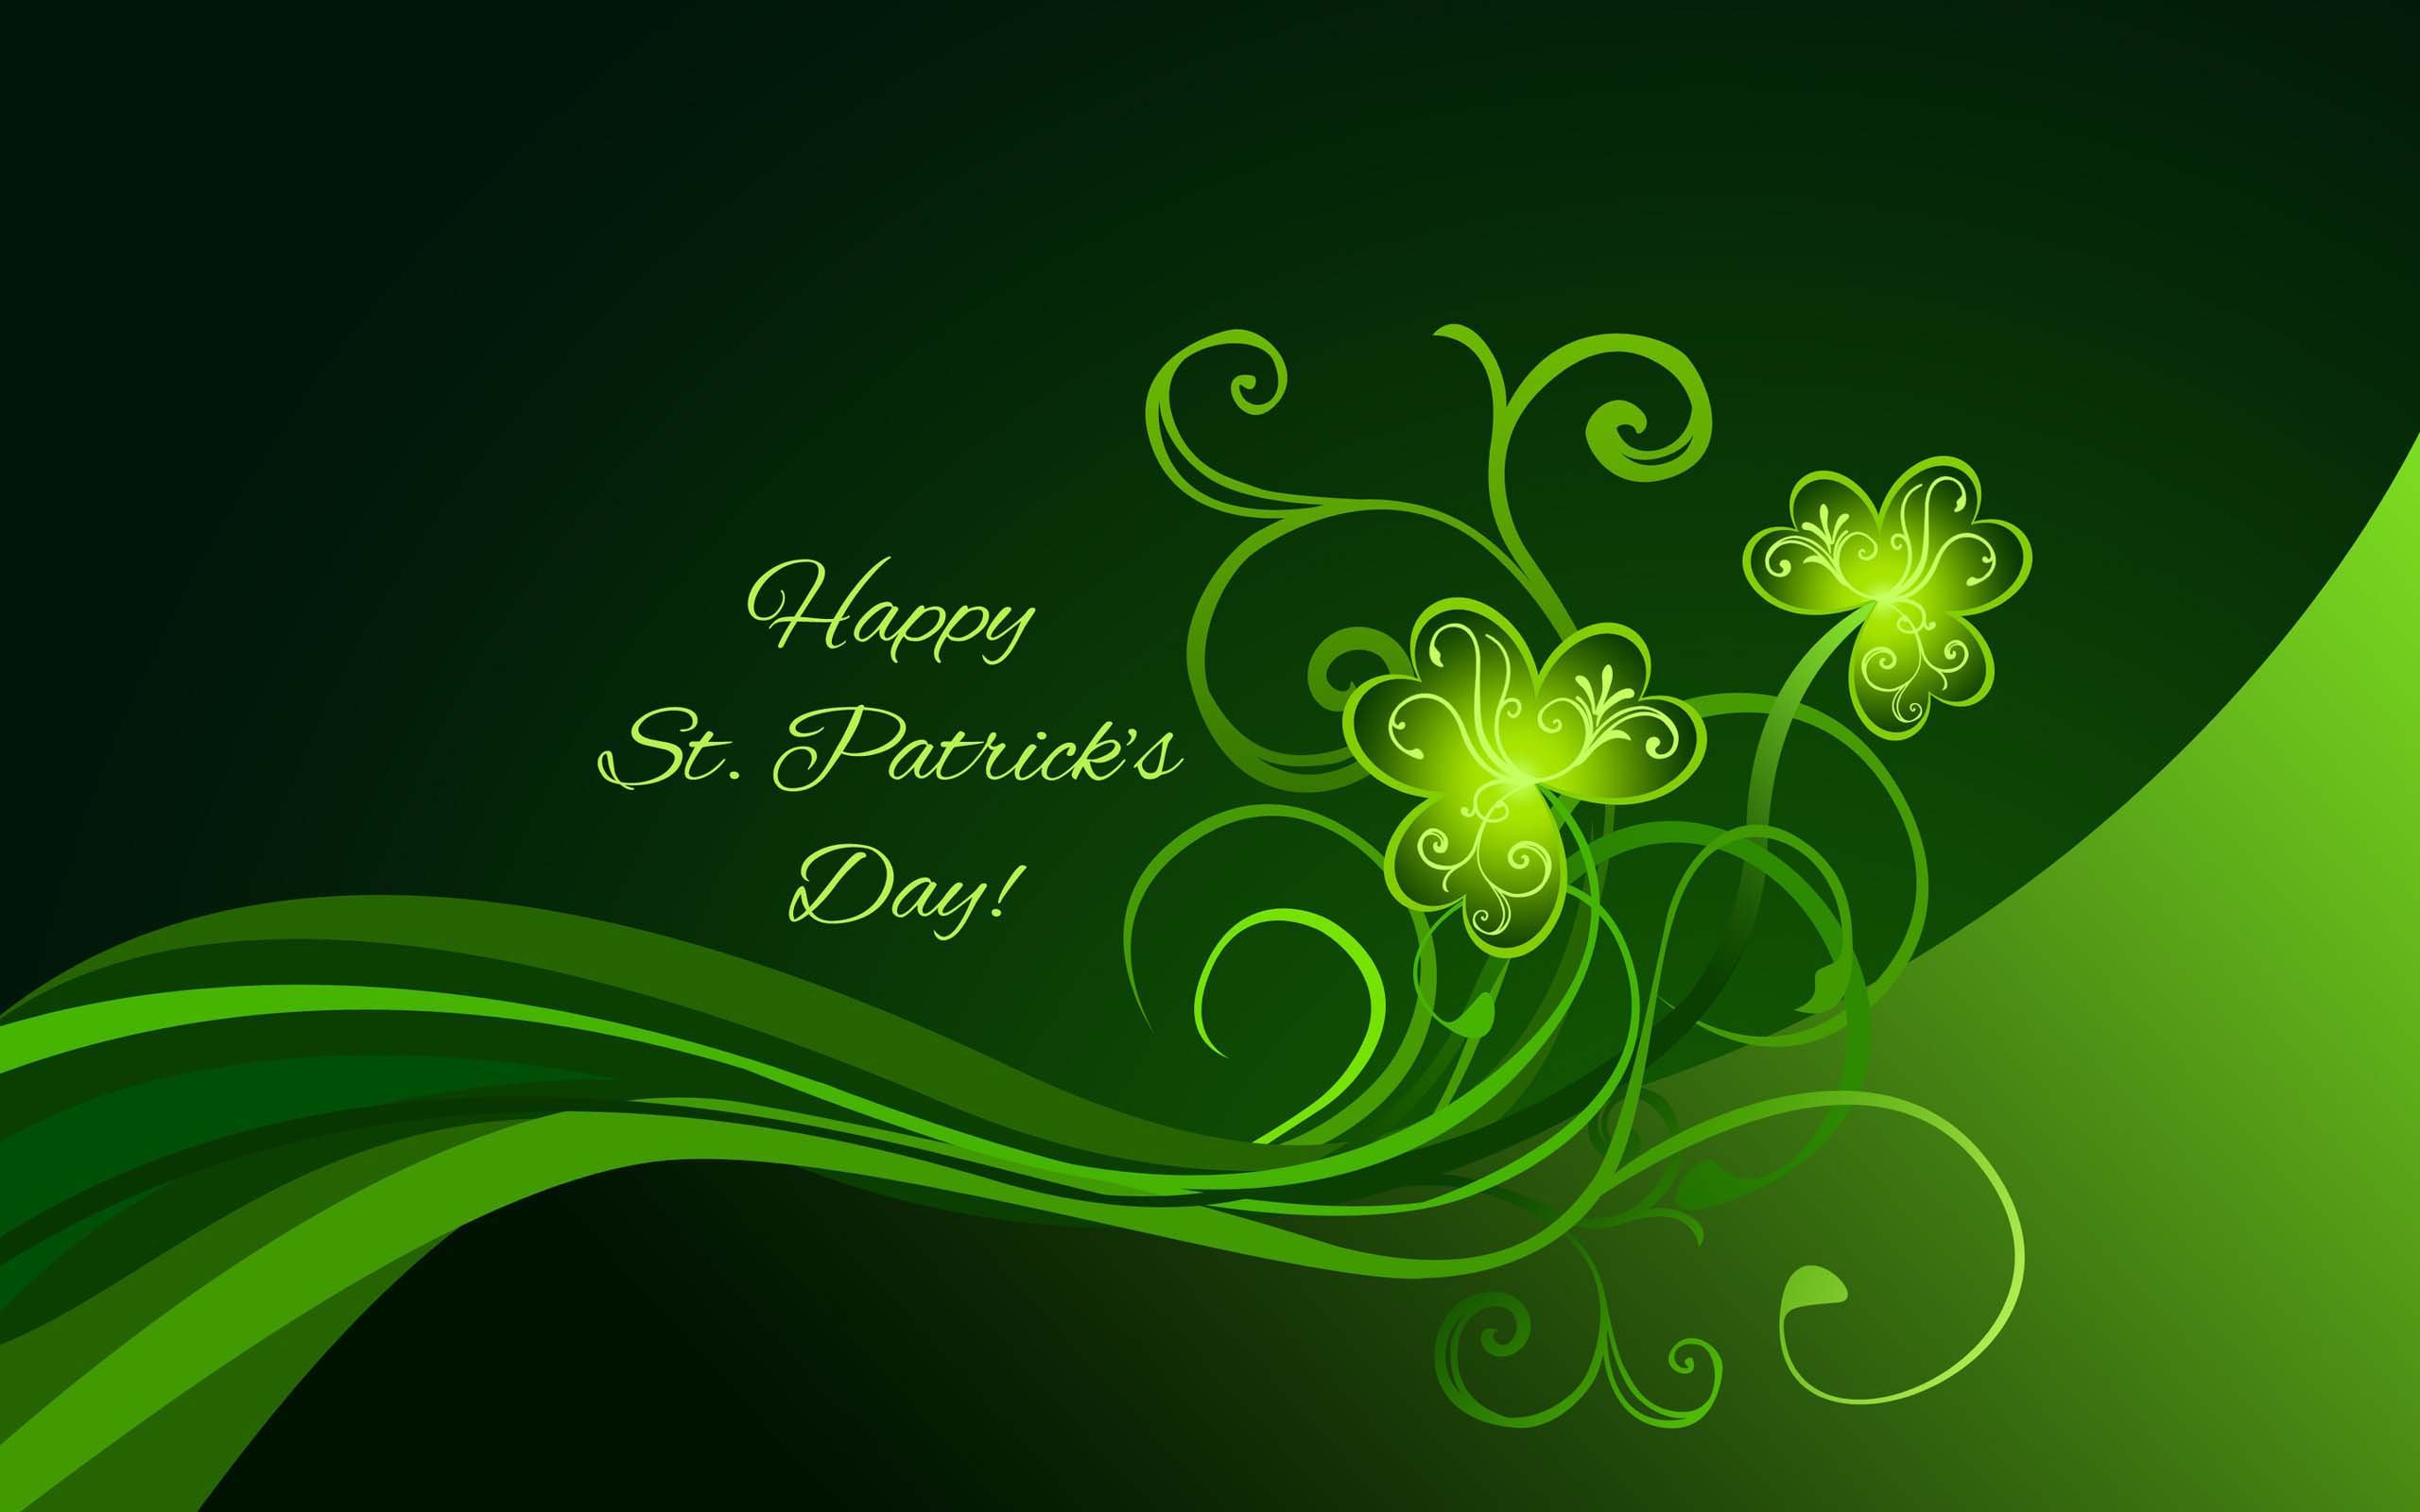 St Patricks Day Wallpapers and Background Images   stmednet 2560x1600